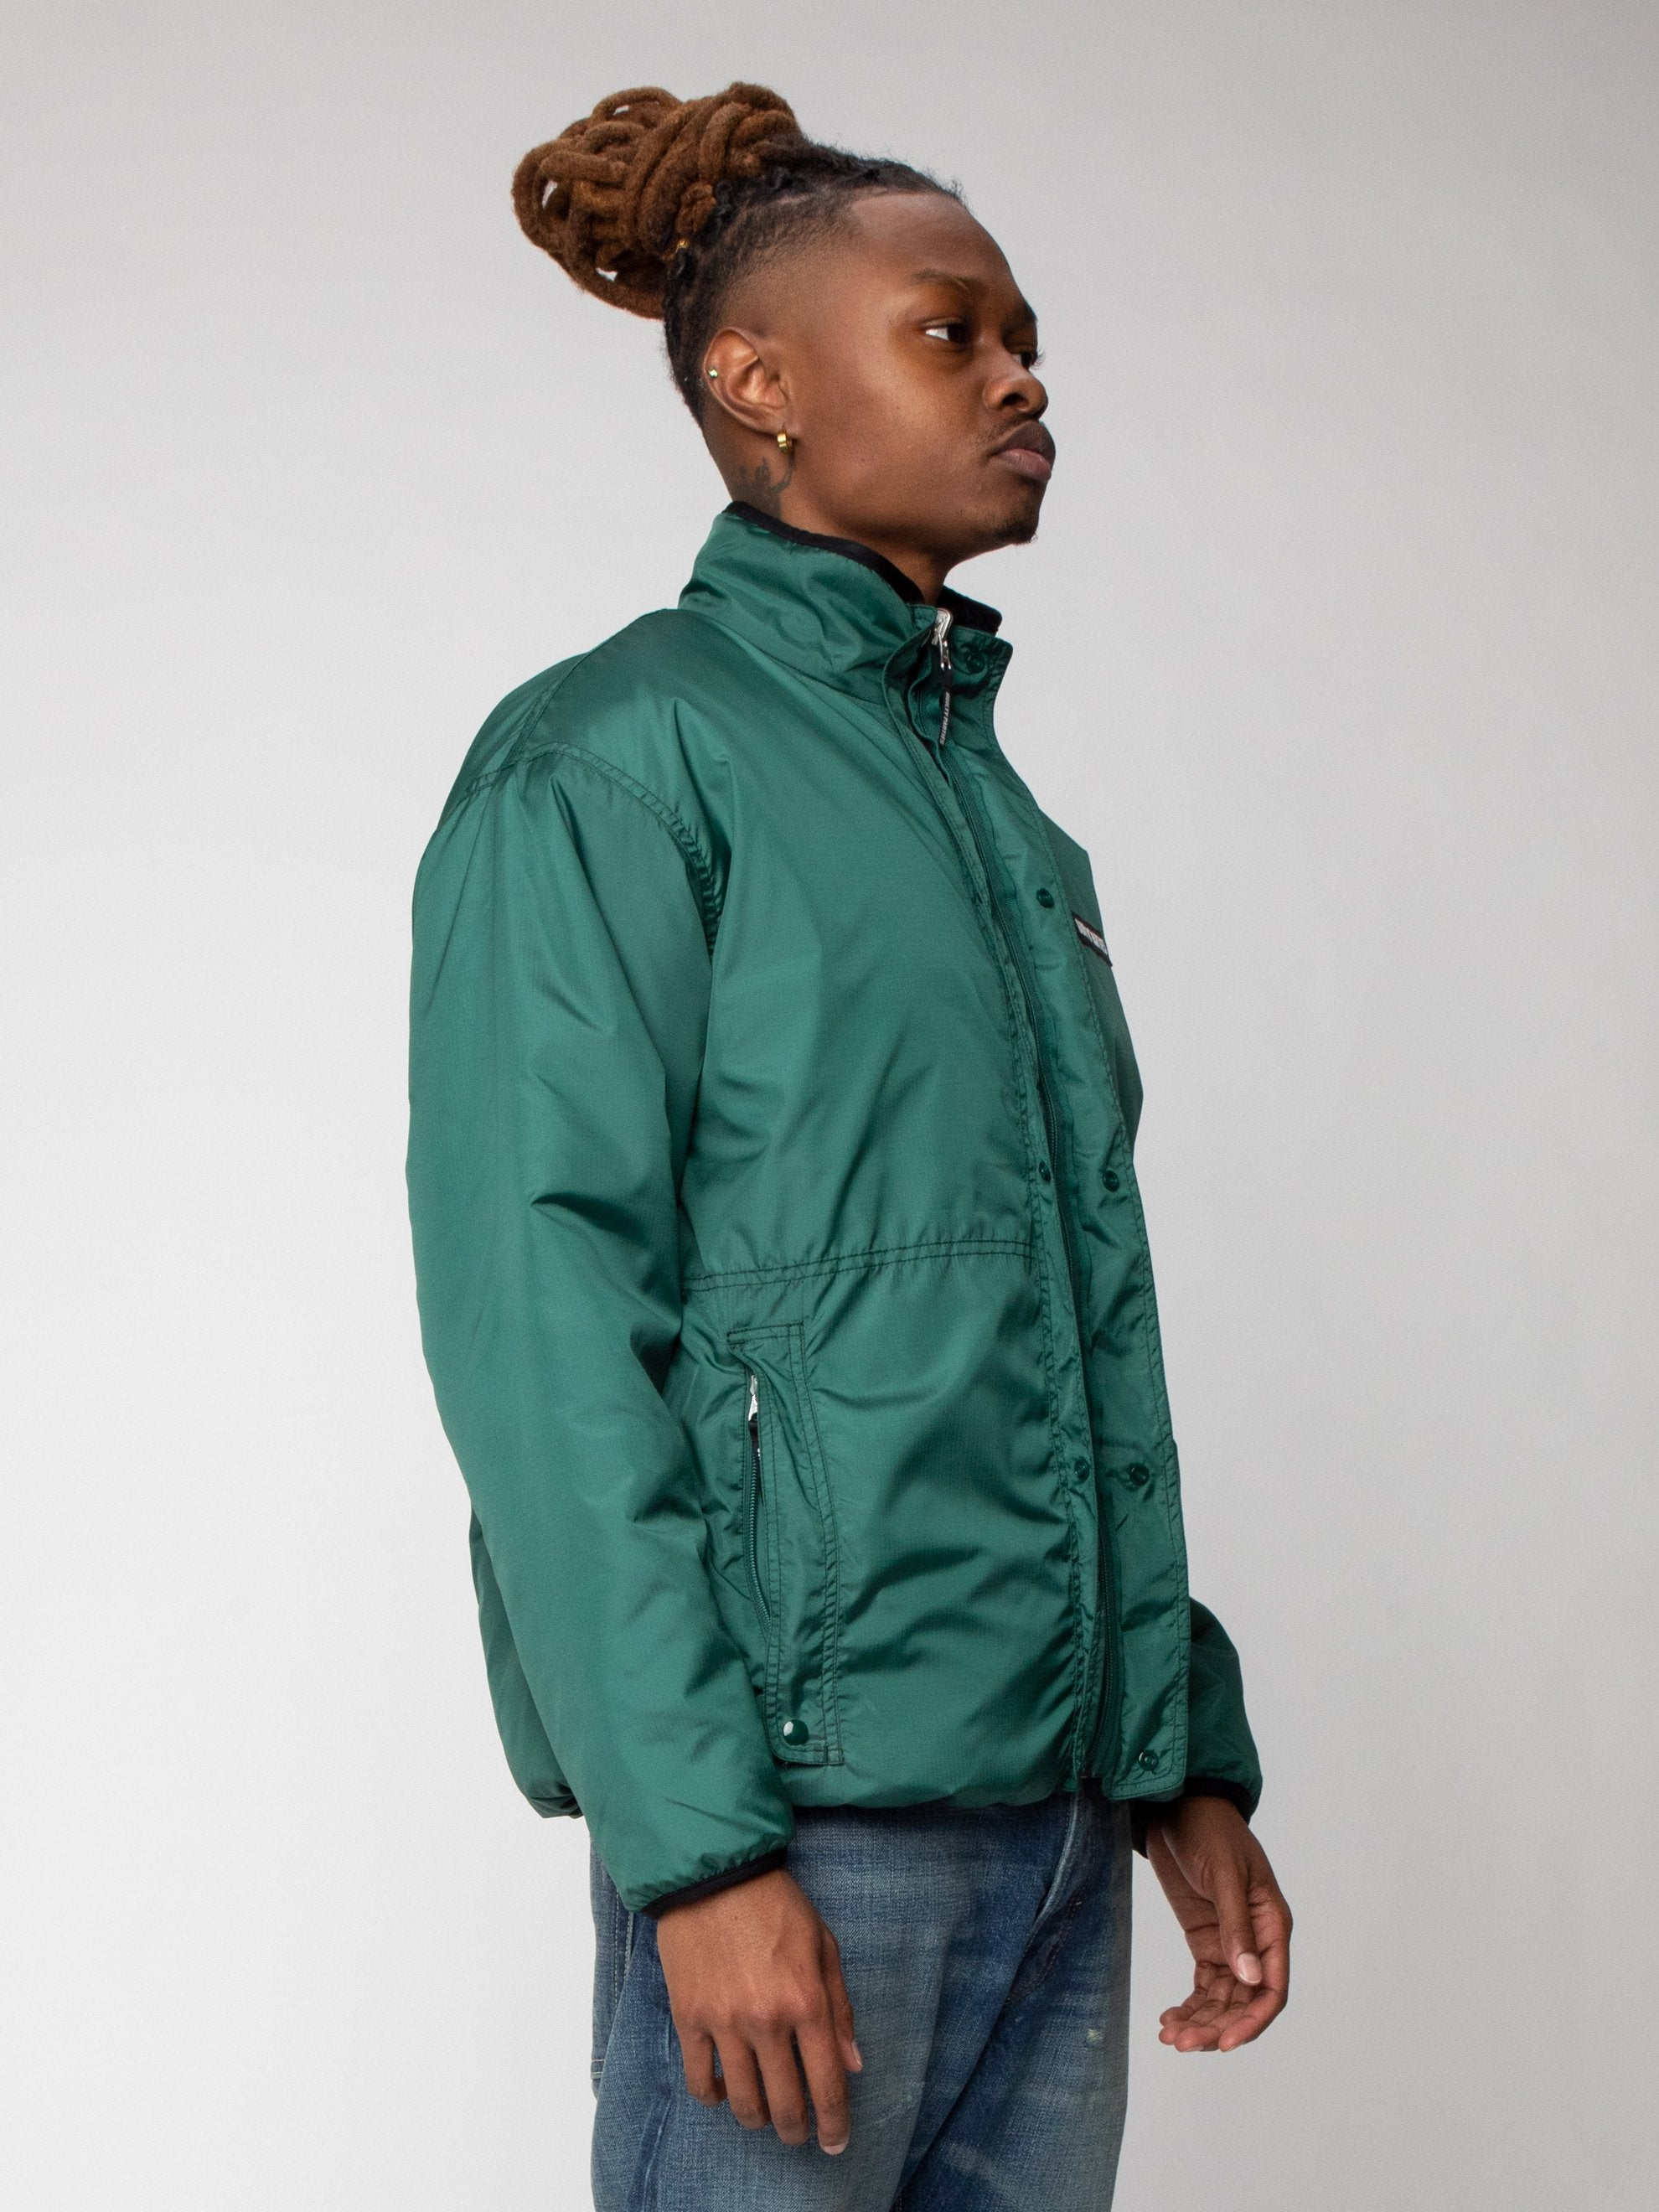 Green Reversible Boa Fleece Jacket 5